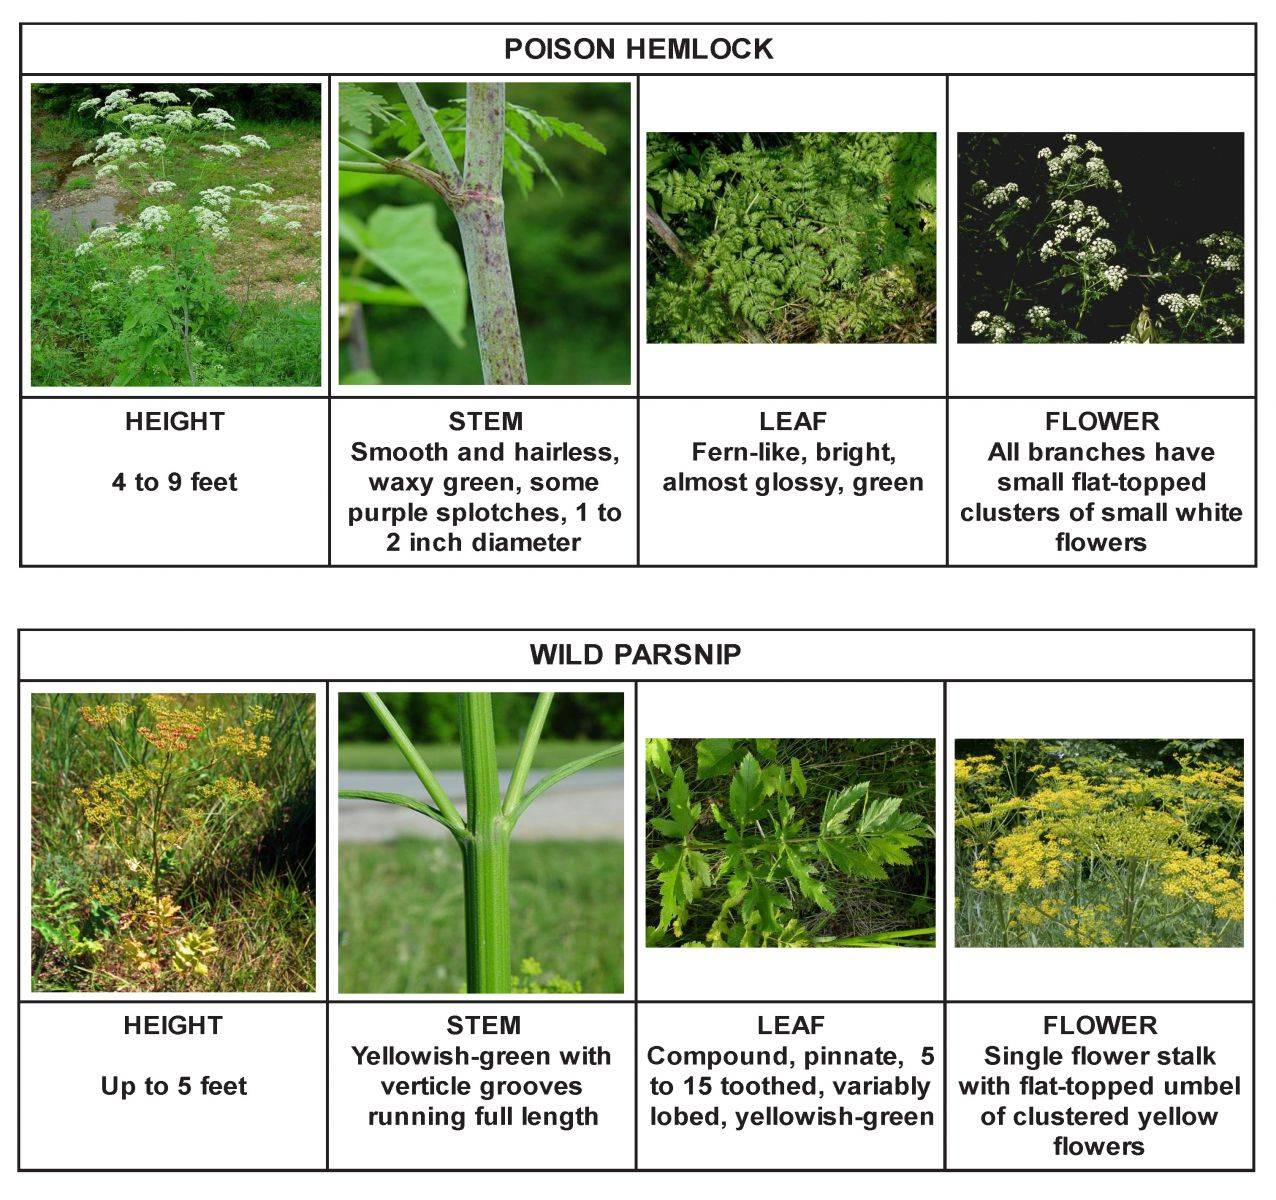 Giant Hogweed New York Invasive Species Information